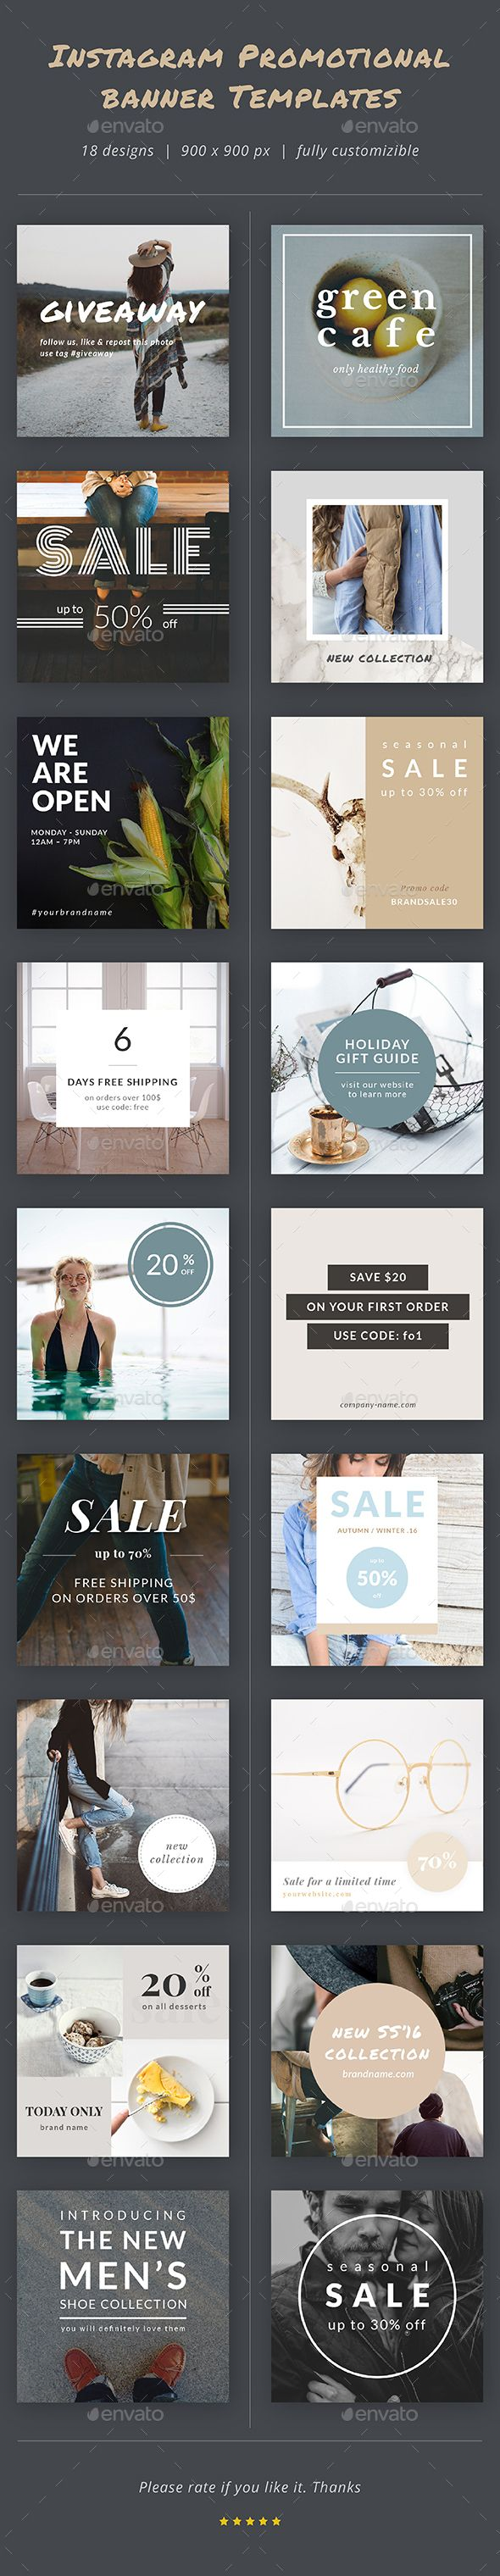 Instagram Promotional Banner Templates  #Instagram Promo #marketing #minimalistic • Available here → http://graphicriver.net/item/instagram-promotional-banner-templates/14270345?ref=pxcr